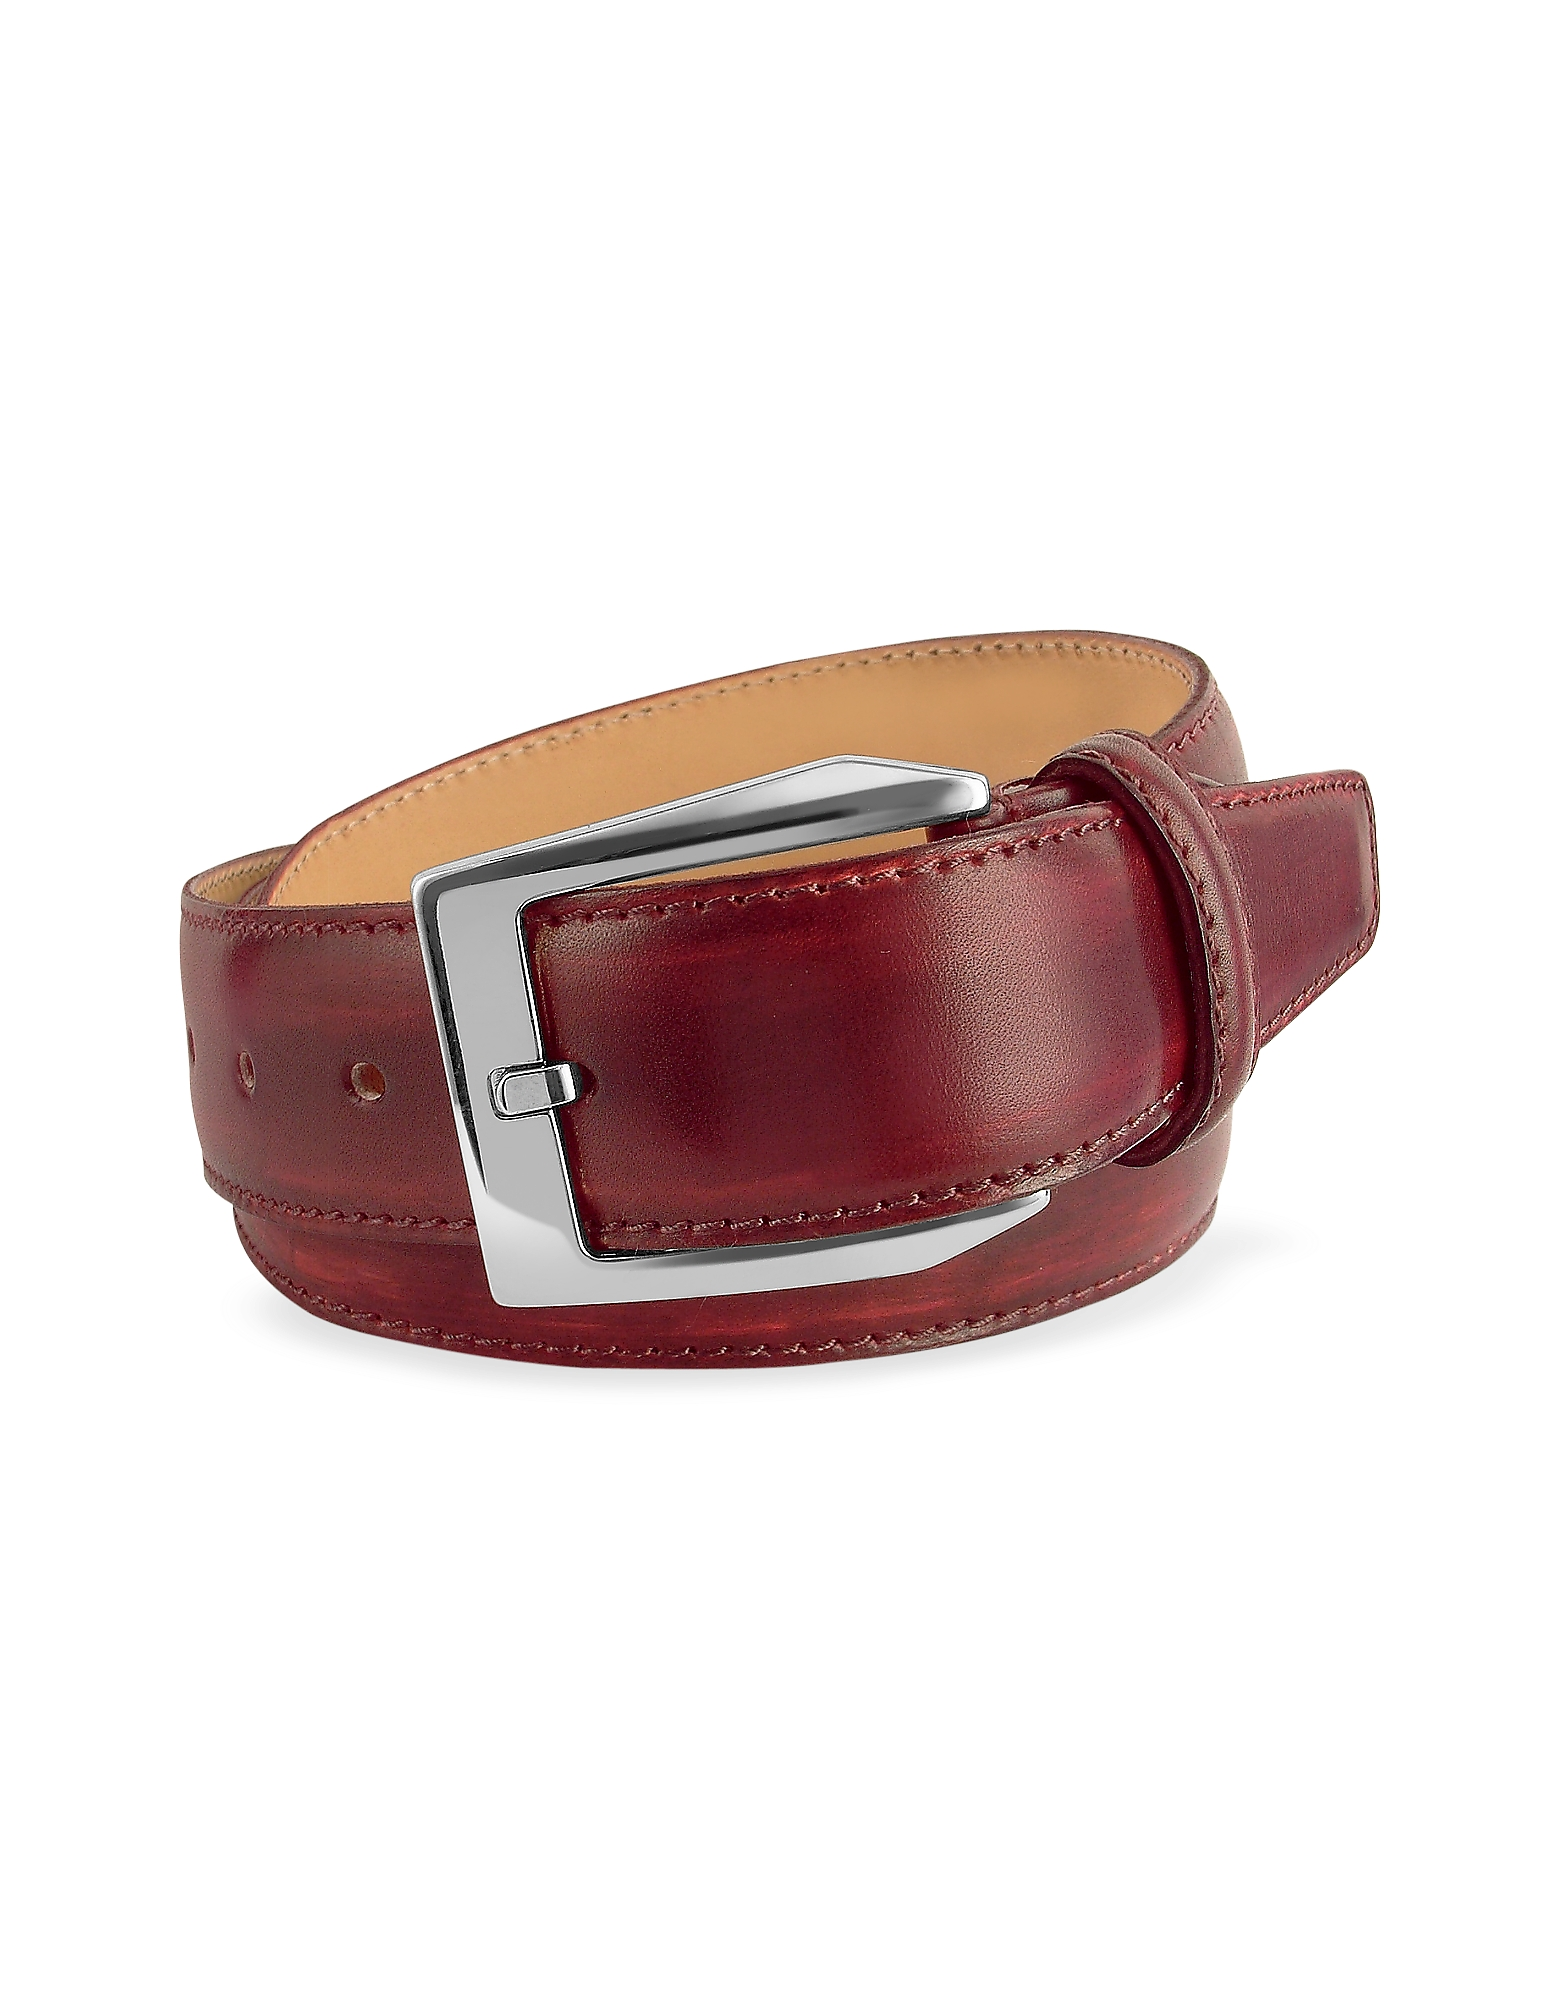 Pakerson Men's Belts, Men's Wine Red Hand Painted Italian Leather Belt